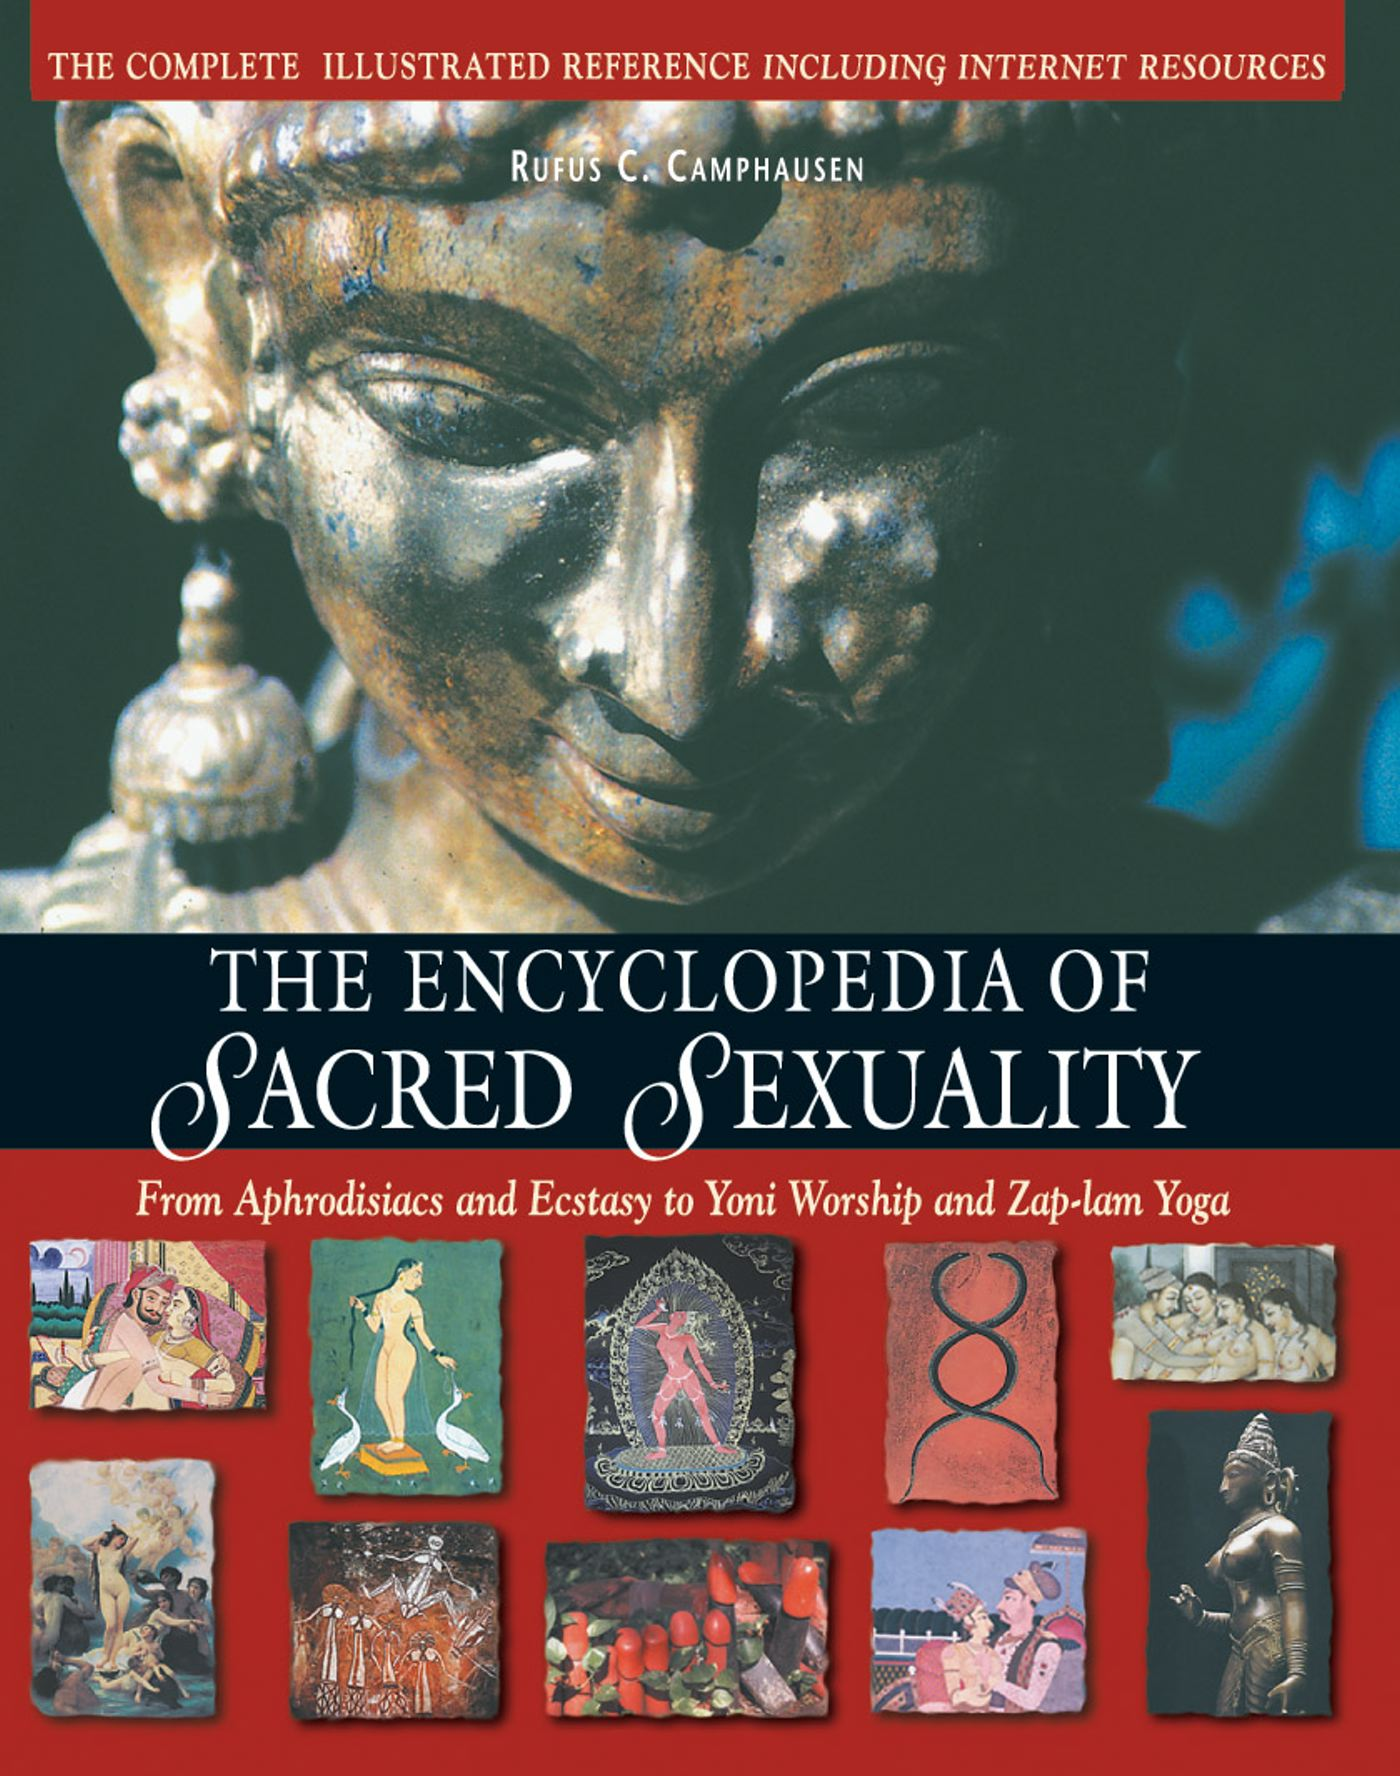 The encyclopedia of sacred sexuality 9780892817191 hr